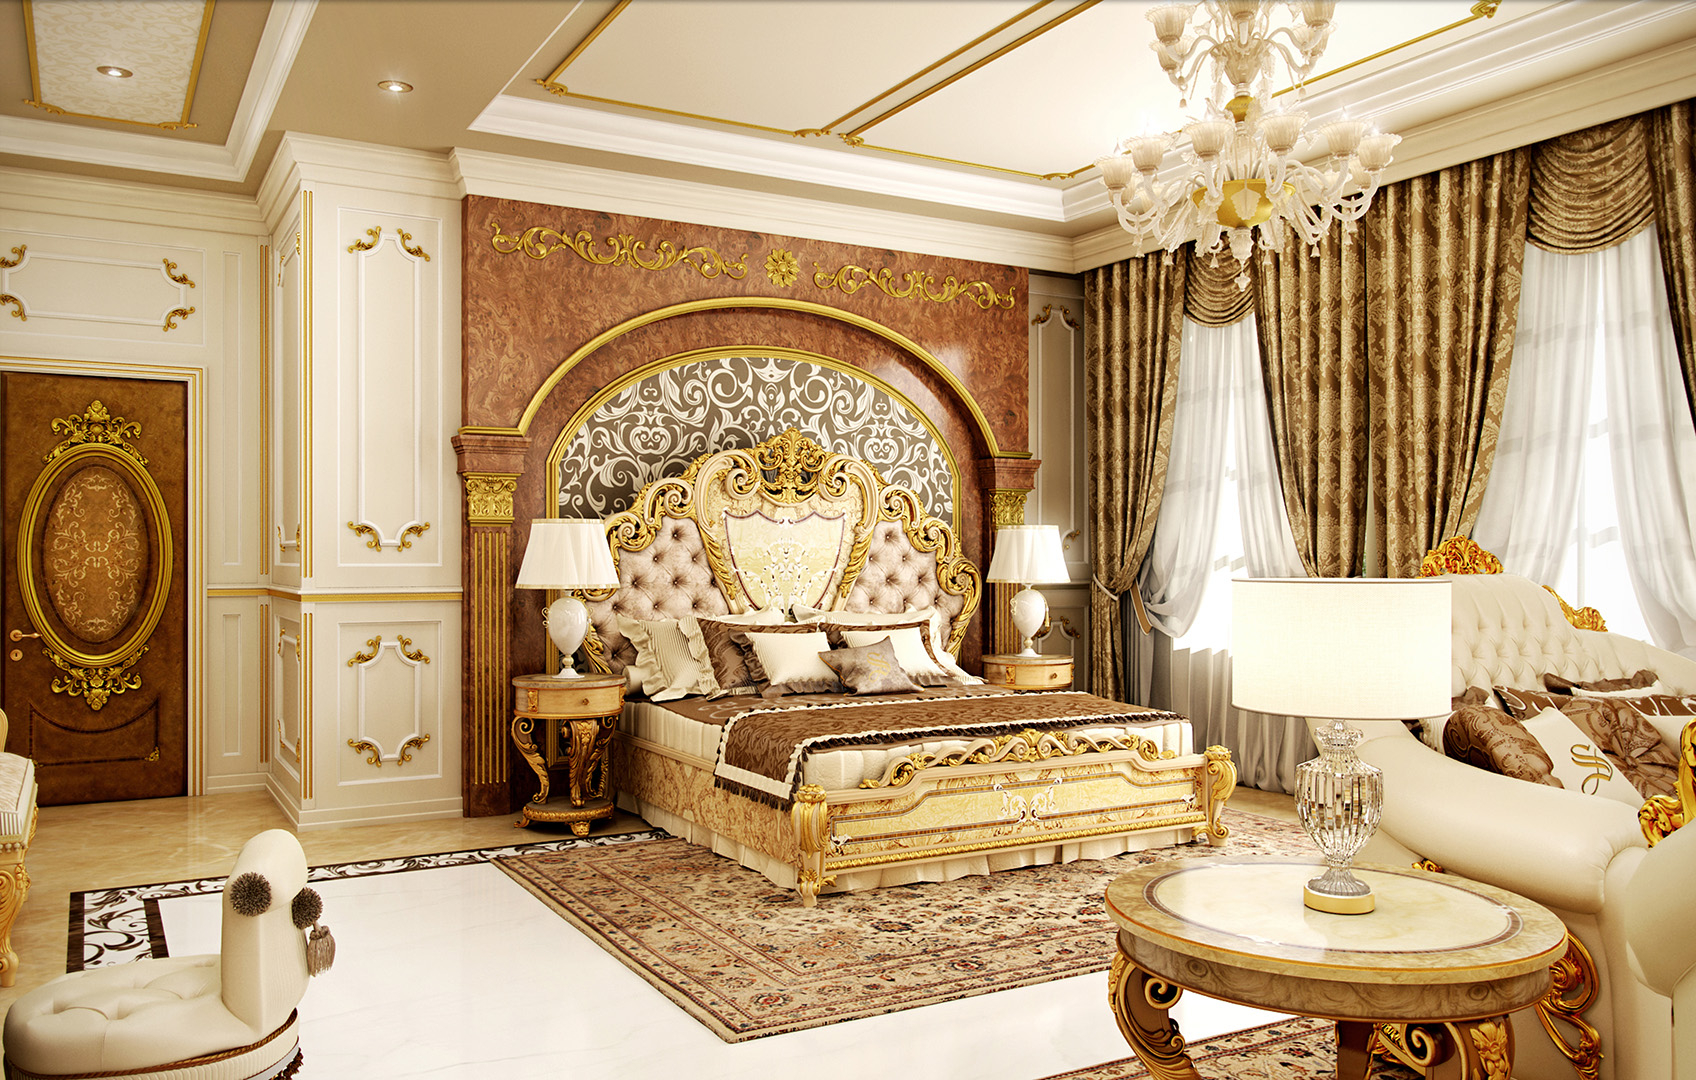 09 Madame bedroom RENDER1 06 07 2015